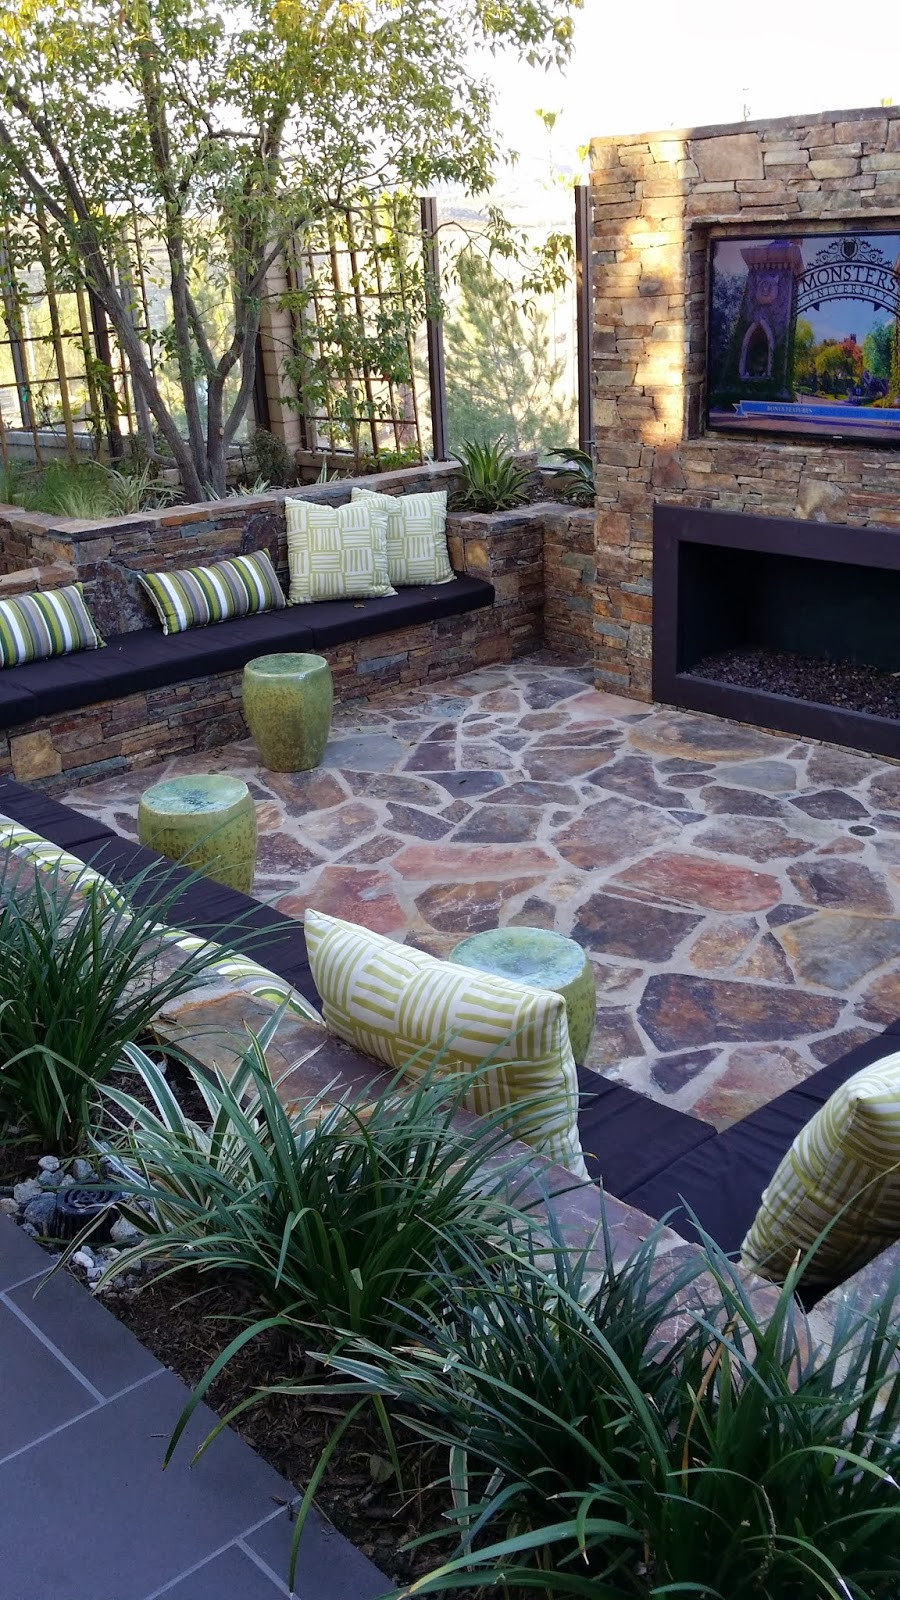 Tg interiors model homes in orange county and shopping for Small backyard ideas